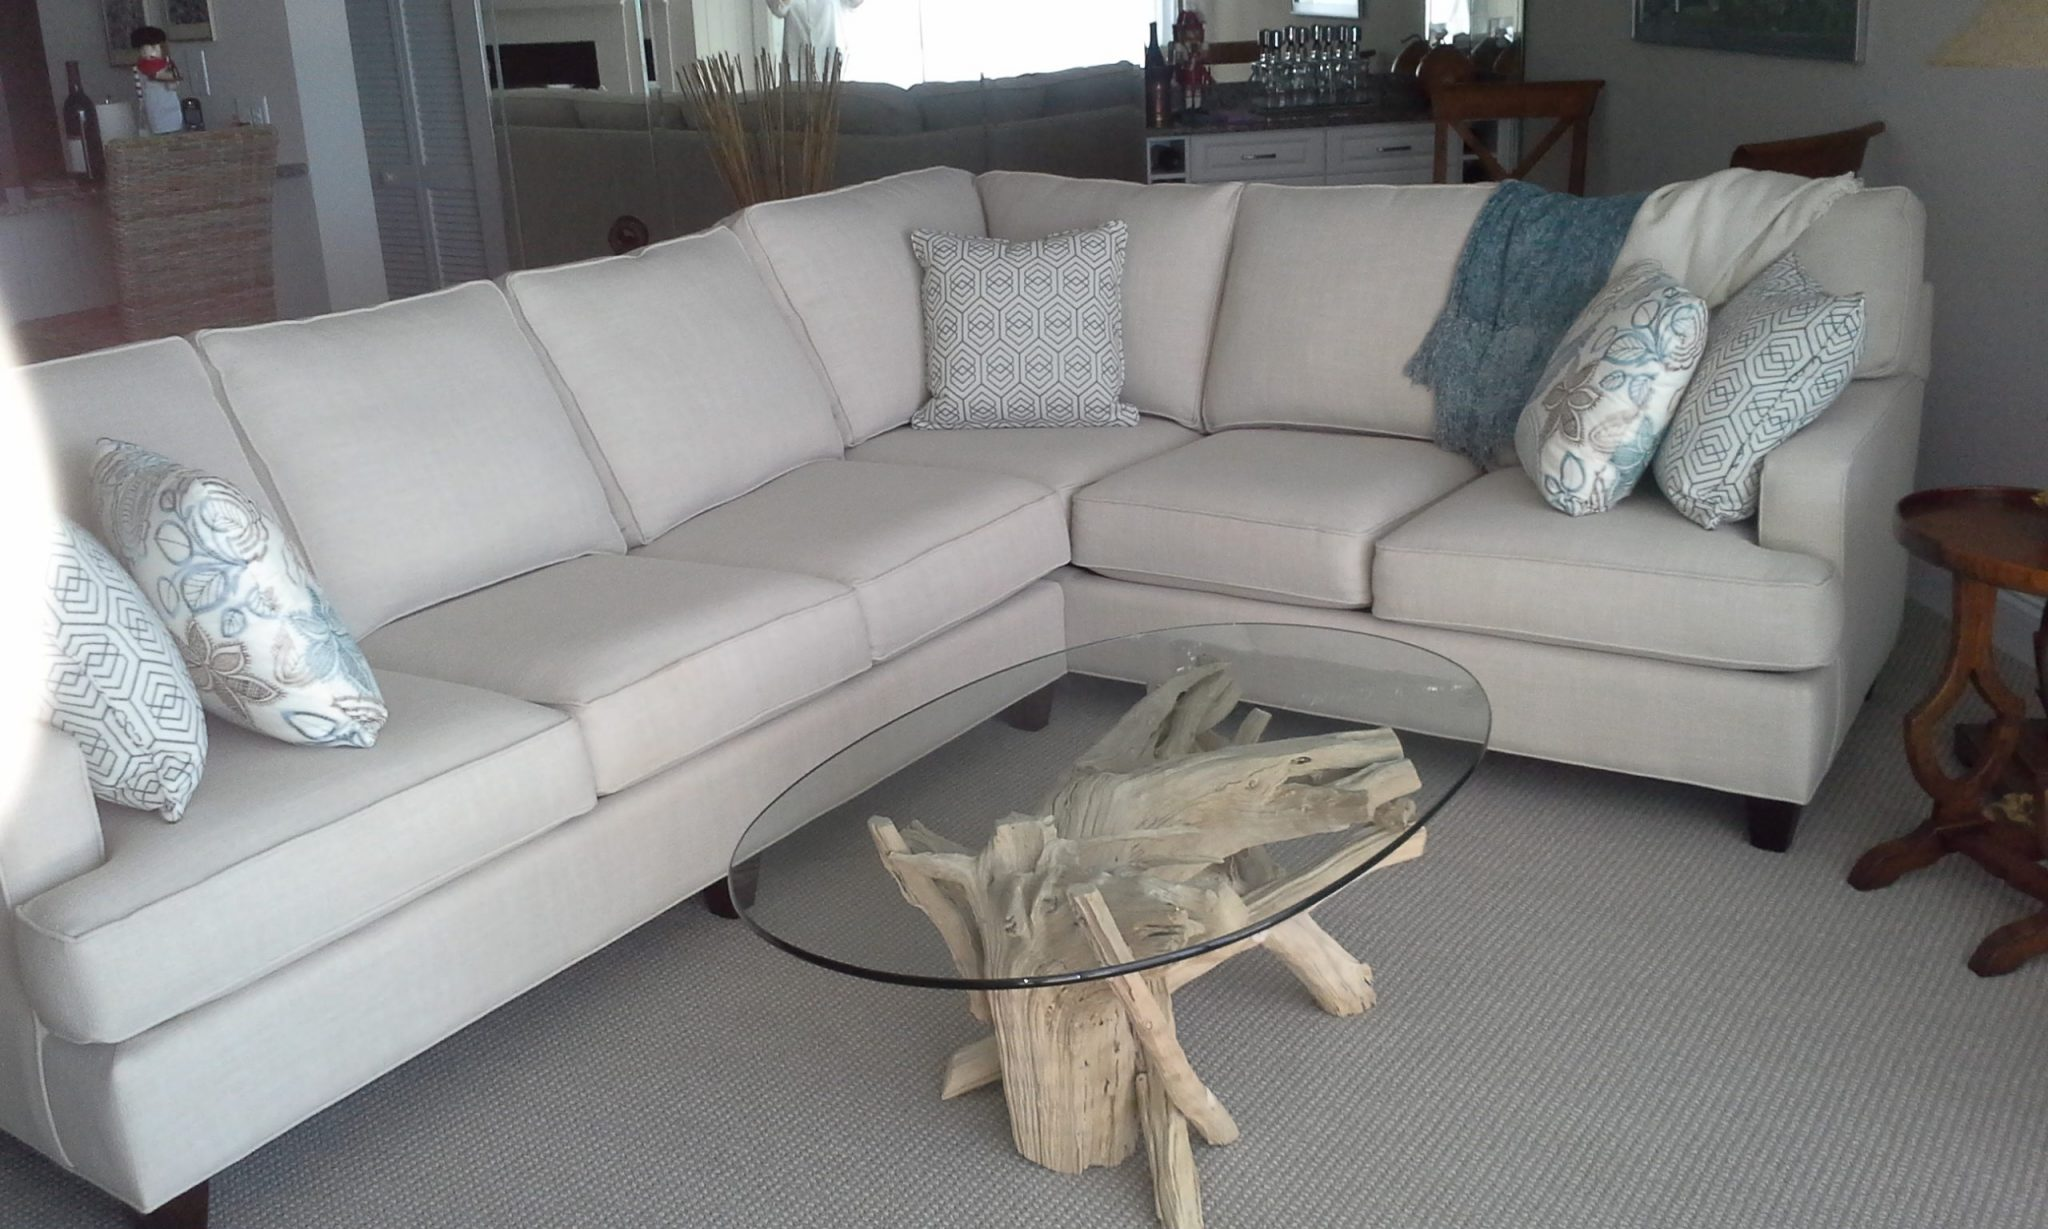 A driftwood coffee table of a different color